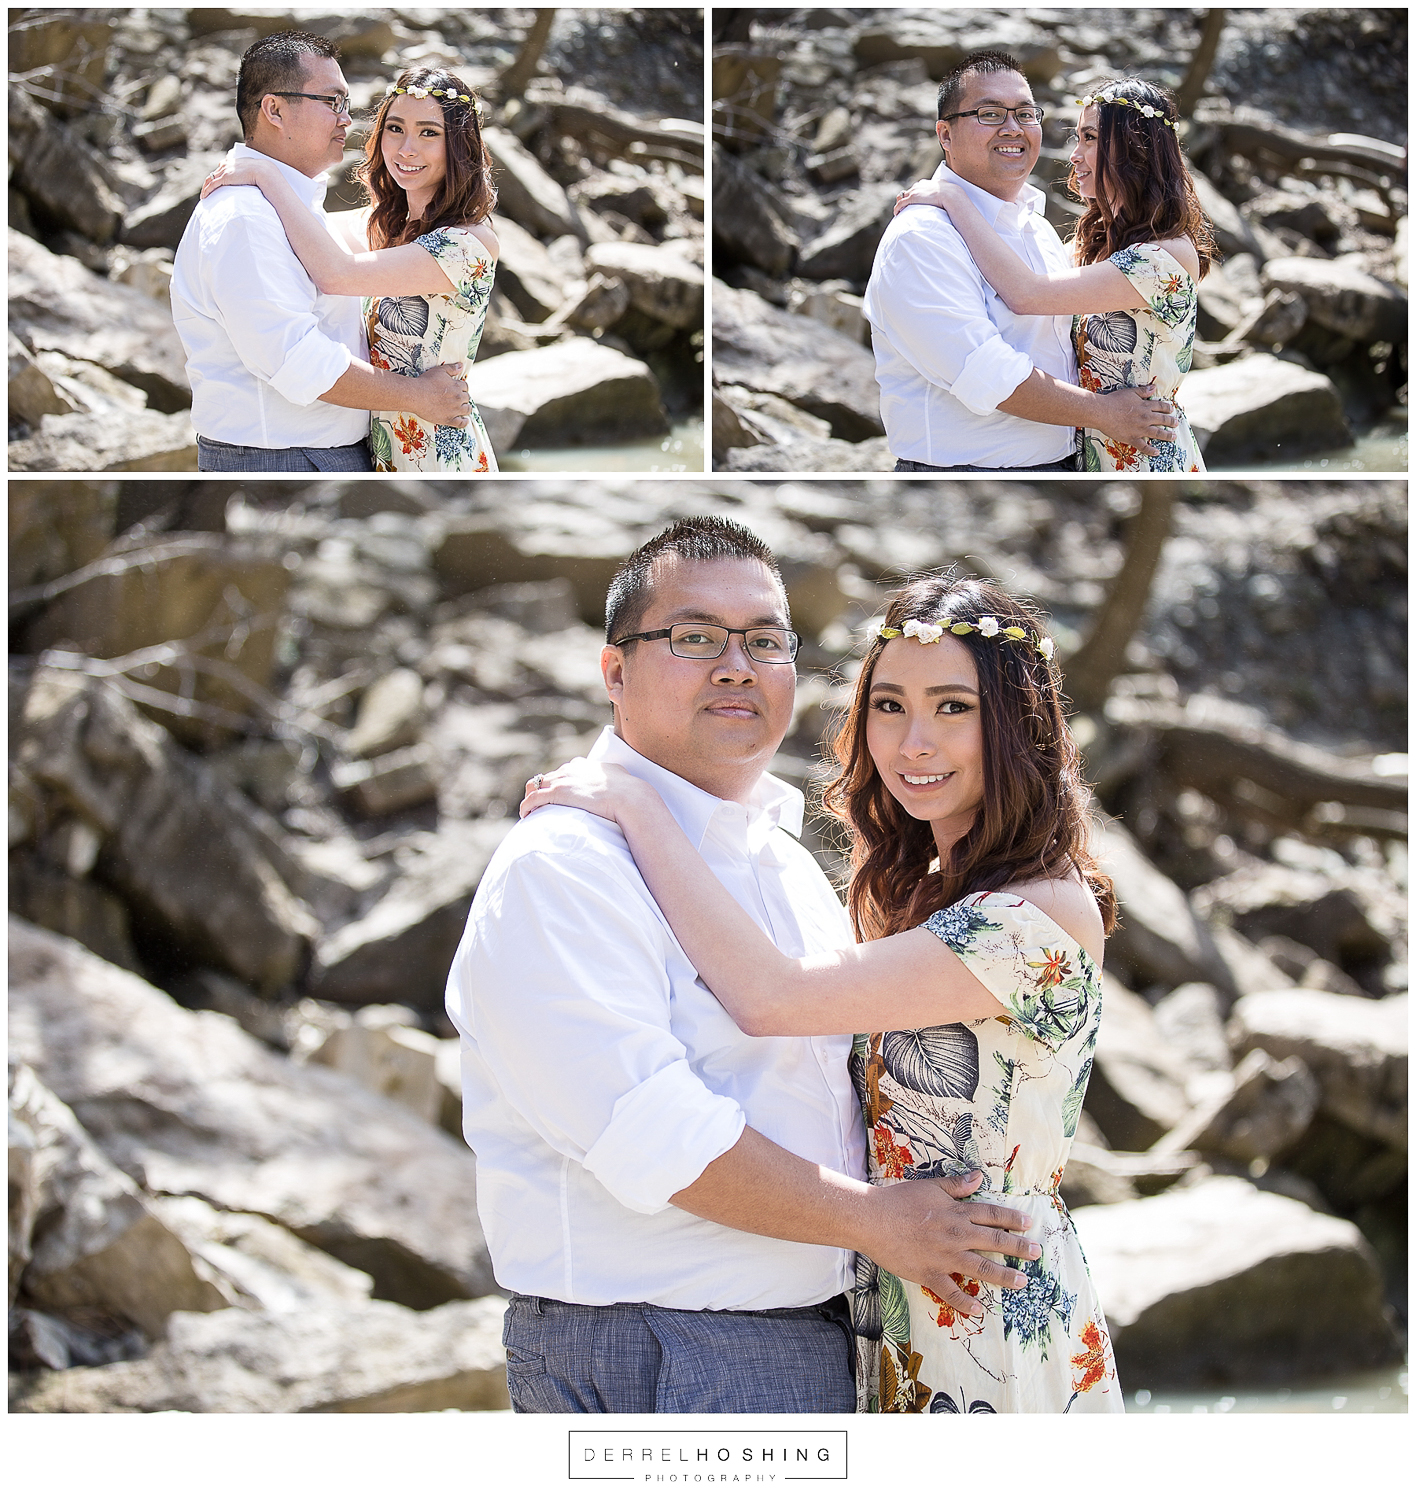 Albion-Falls-Engagment-Shoot-Hamilton-Toronto-Wedding-Photographer-Derrel-Hoshing-0011.jpg